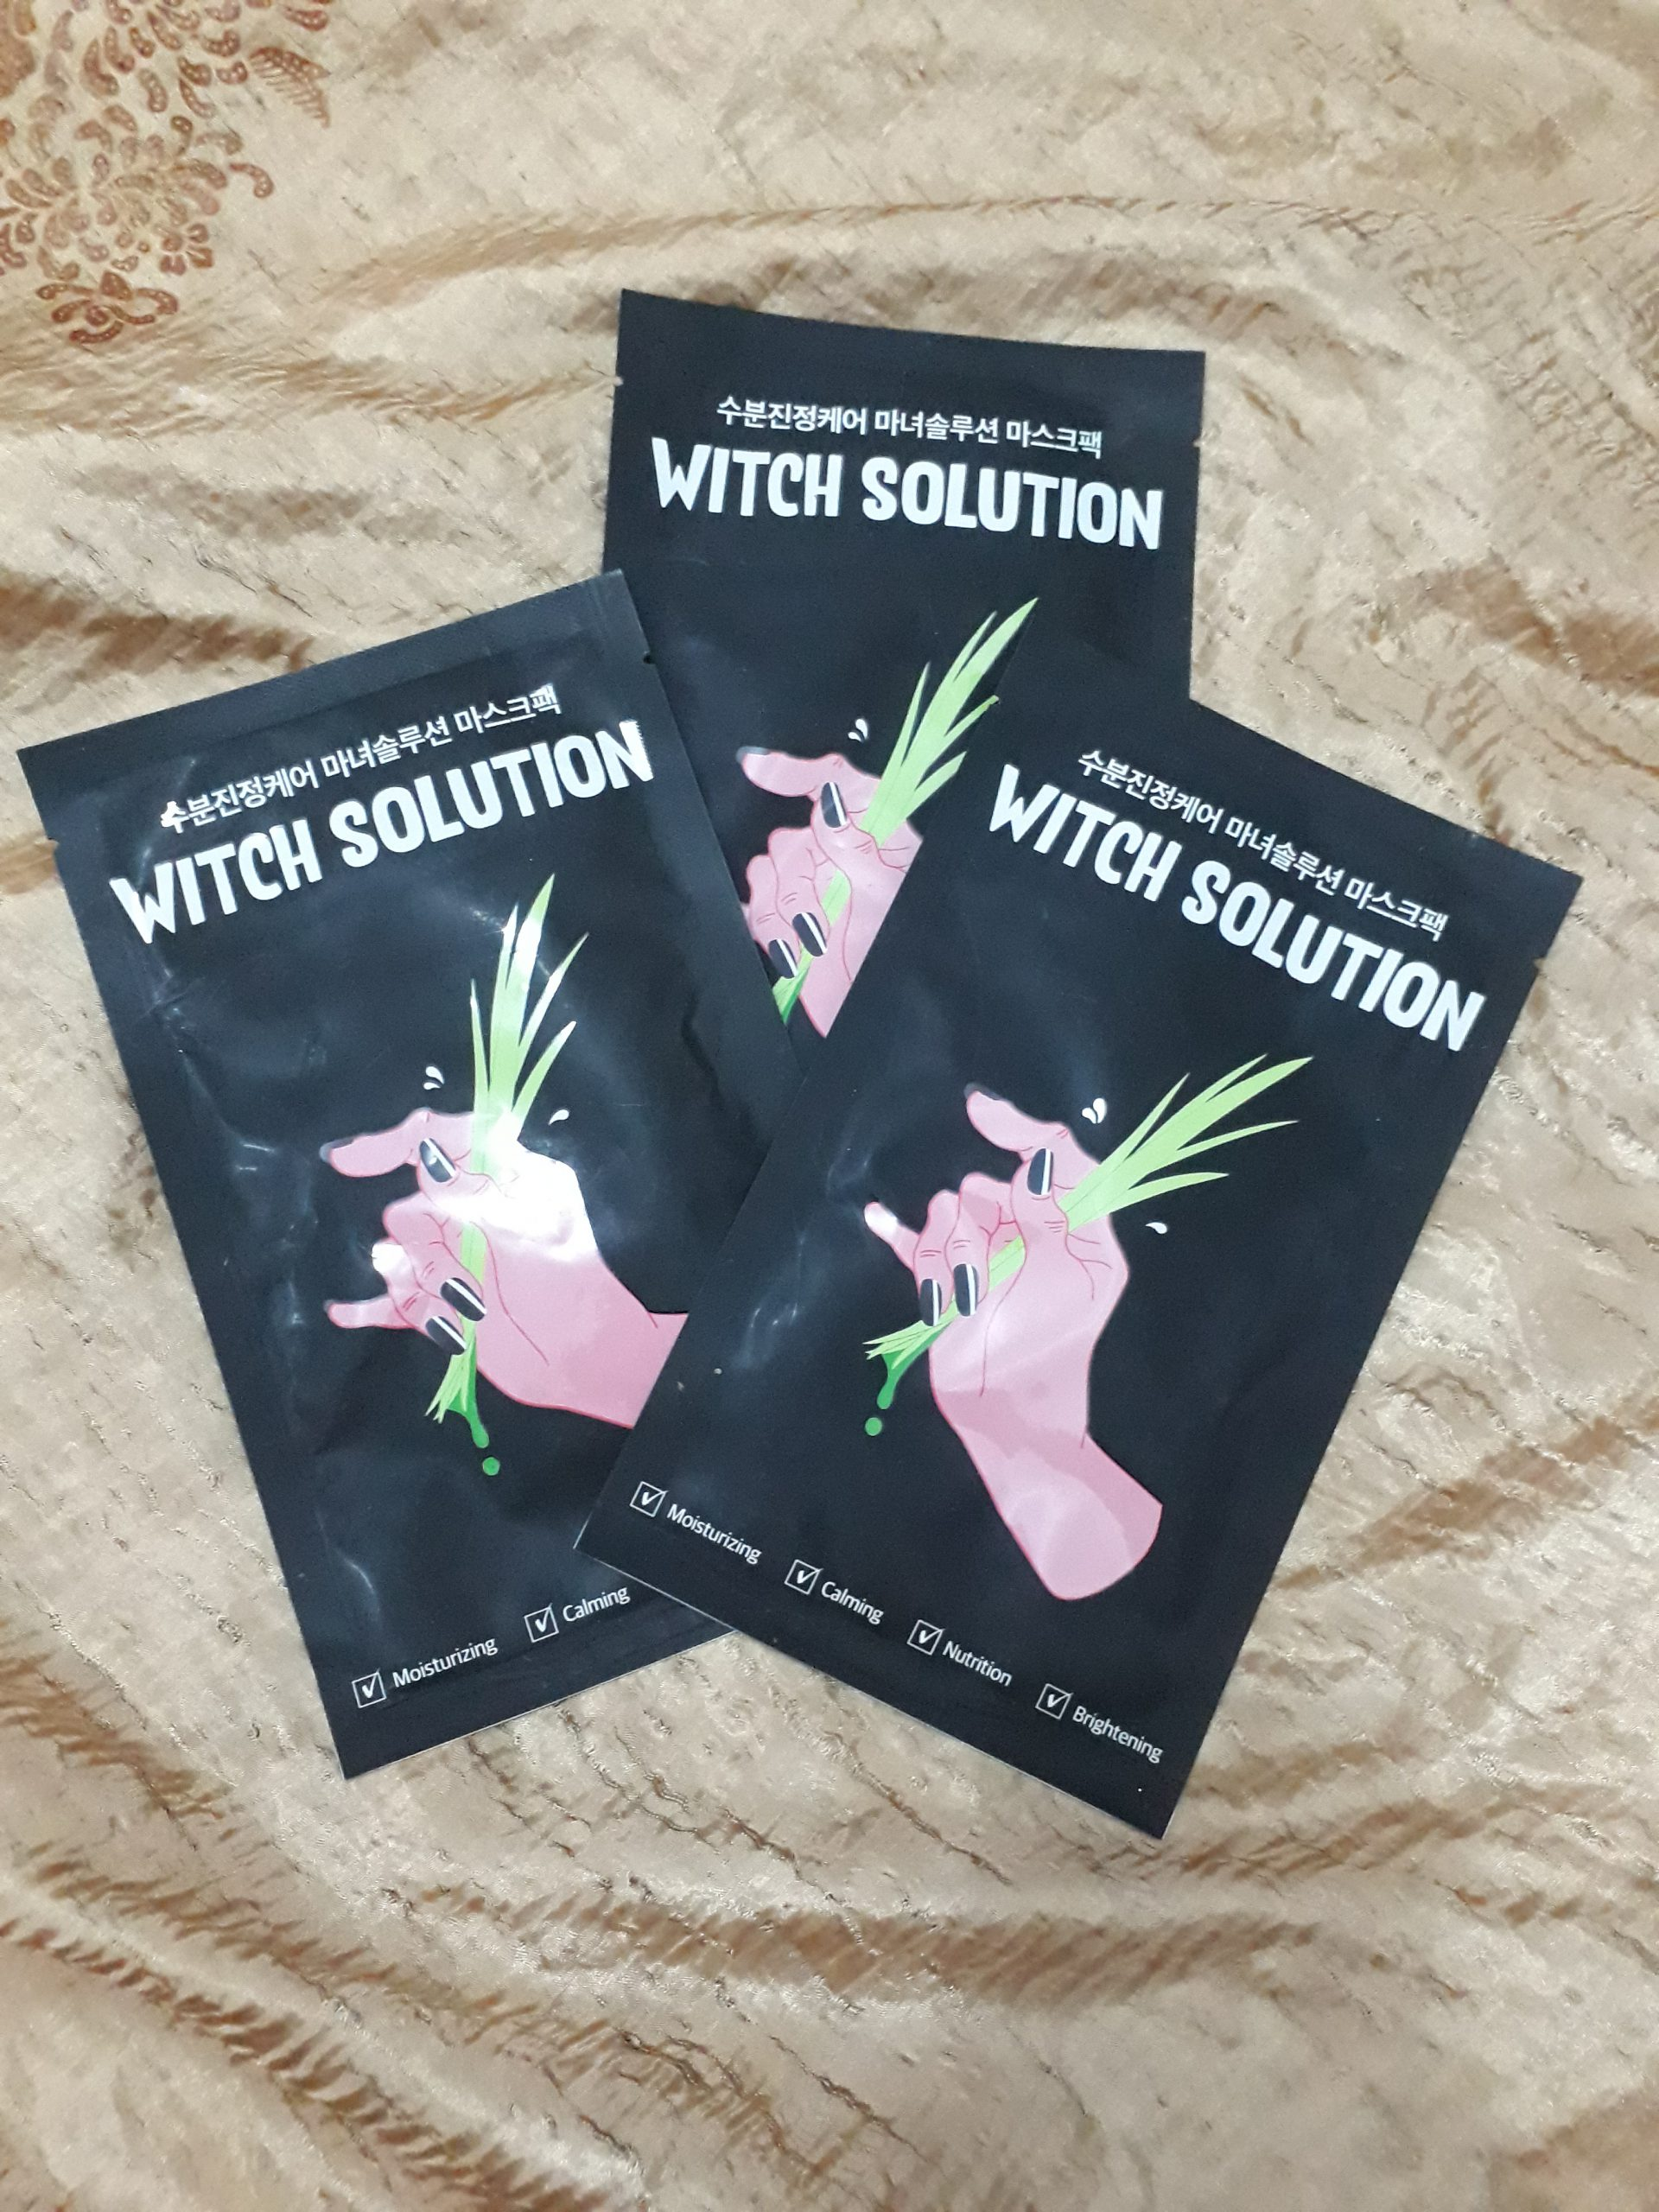 Which solution